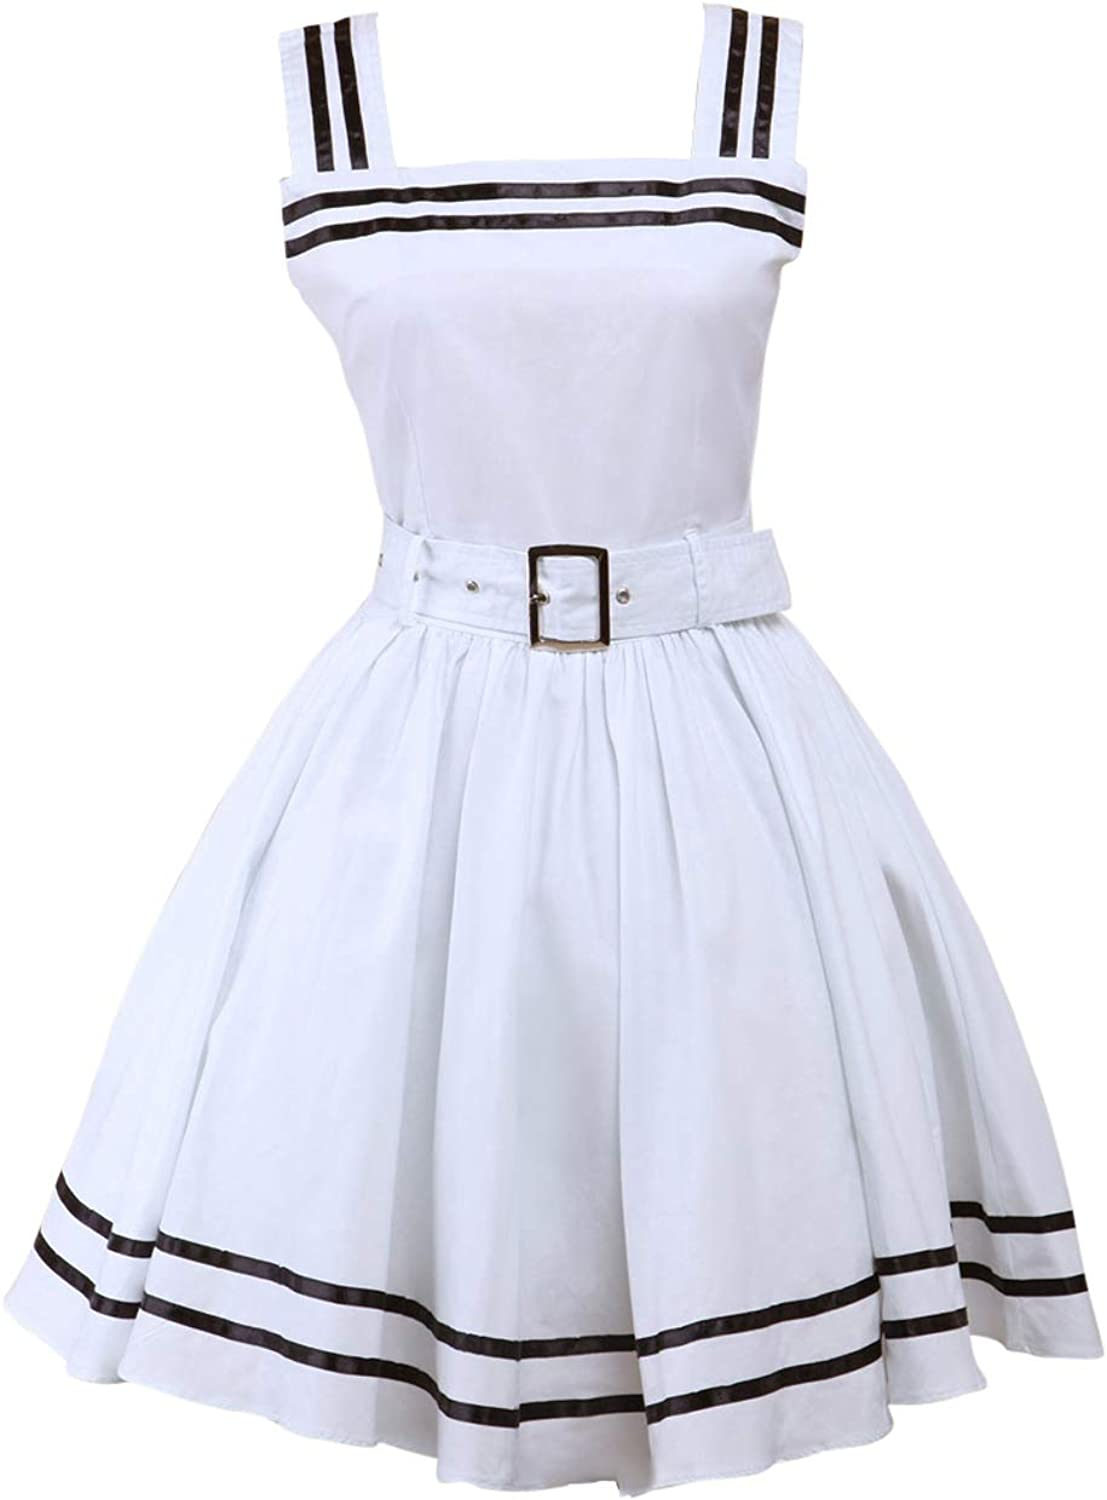 Antaina White Cotton Belt Halter Sweet Sexy Victorian Lolita Cosplay Tube Dress